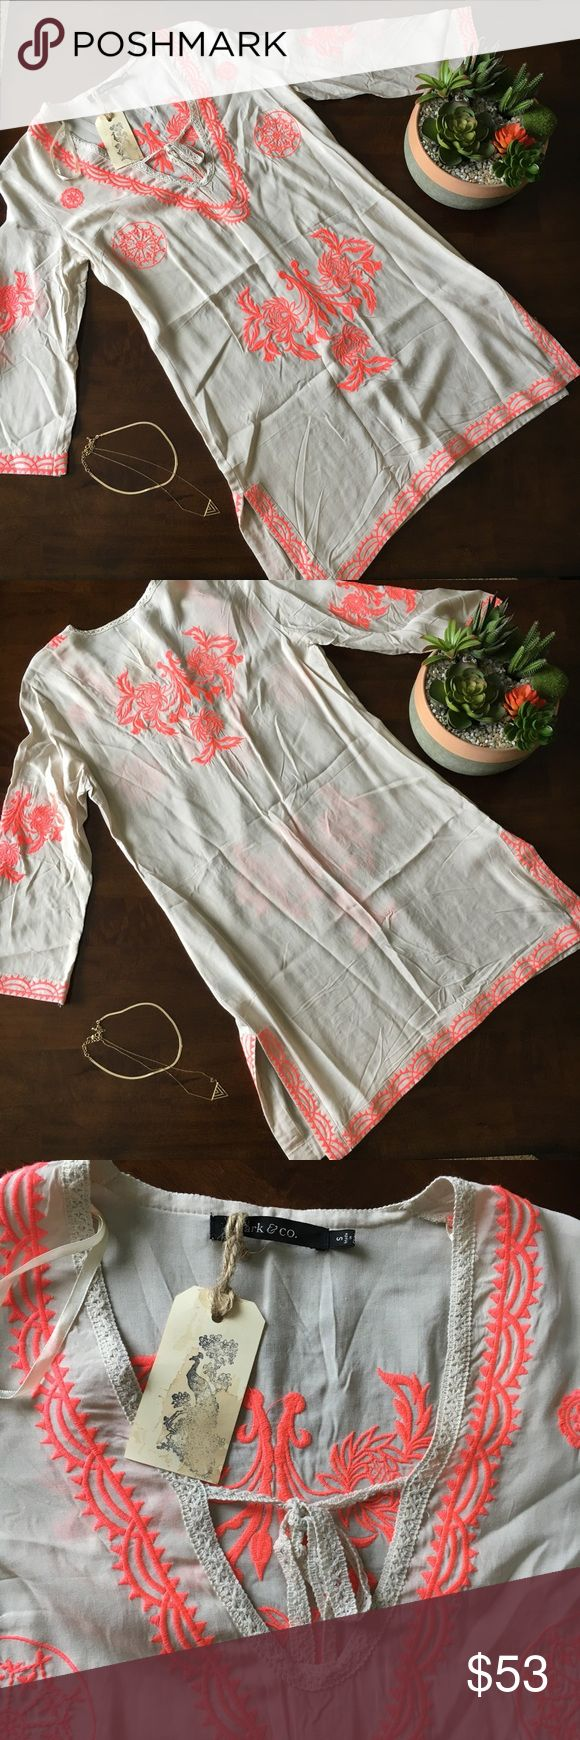 """☀️SALE NWT Coral and Beige Swim Cover Up New with tags! Boutique coral and beige swim cover up. V neck with tie in front and slit on side of hem. Approx measurements: sleeve length: 12"""", shoulder to hem: 32 1/2"""". No defects. No trades please. Ark & Co Swim Coverups"""